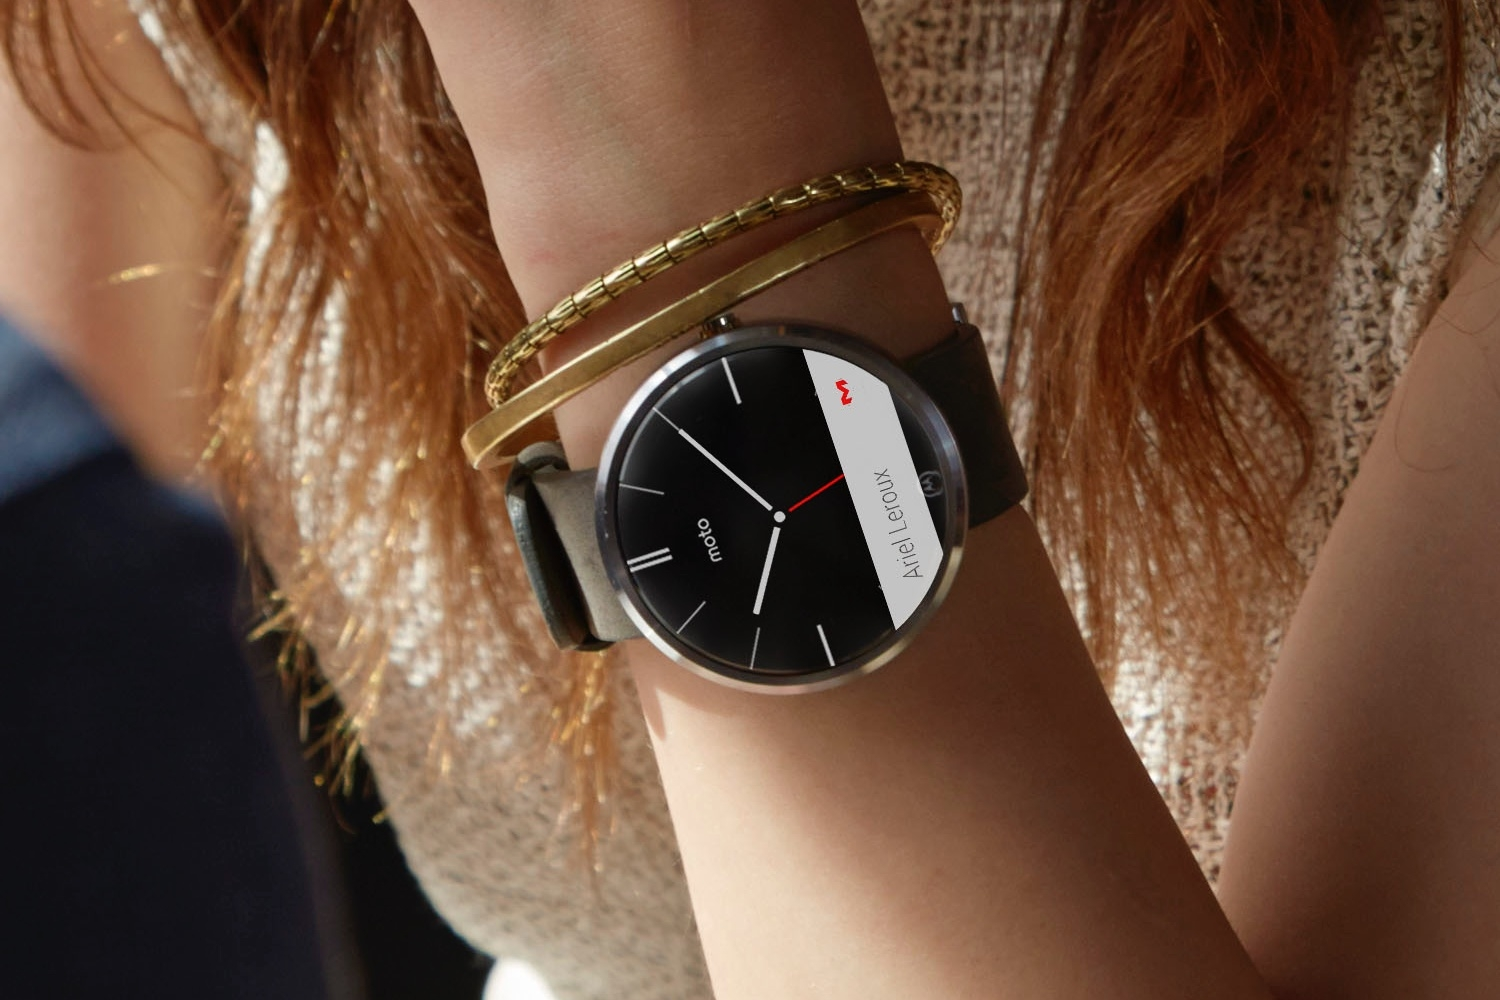 This Is By Far The Best Looking Smartwatch Yet